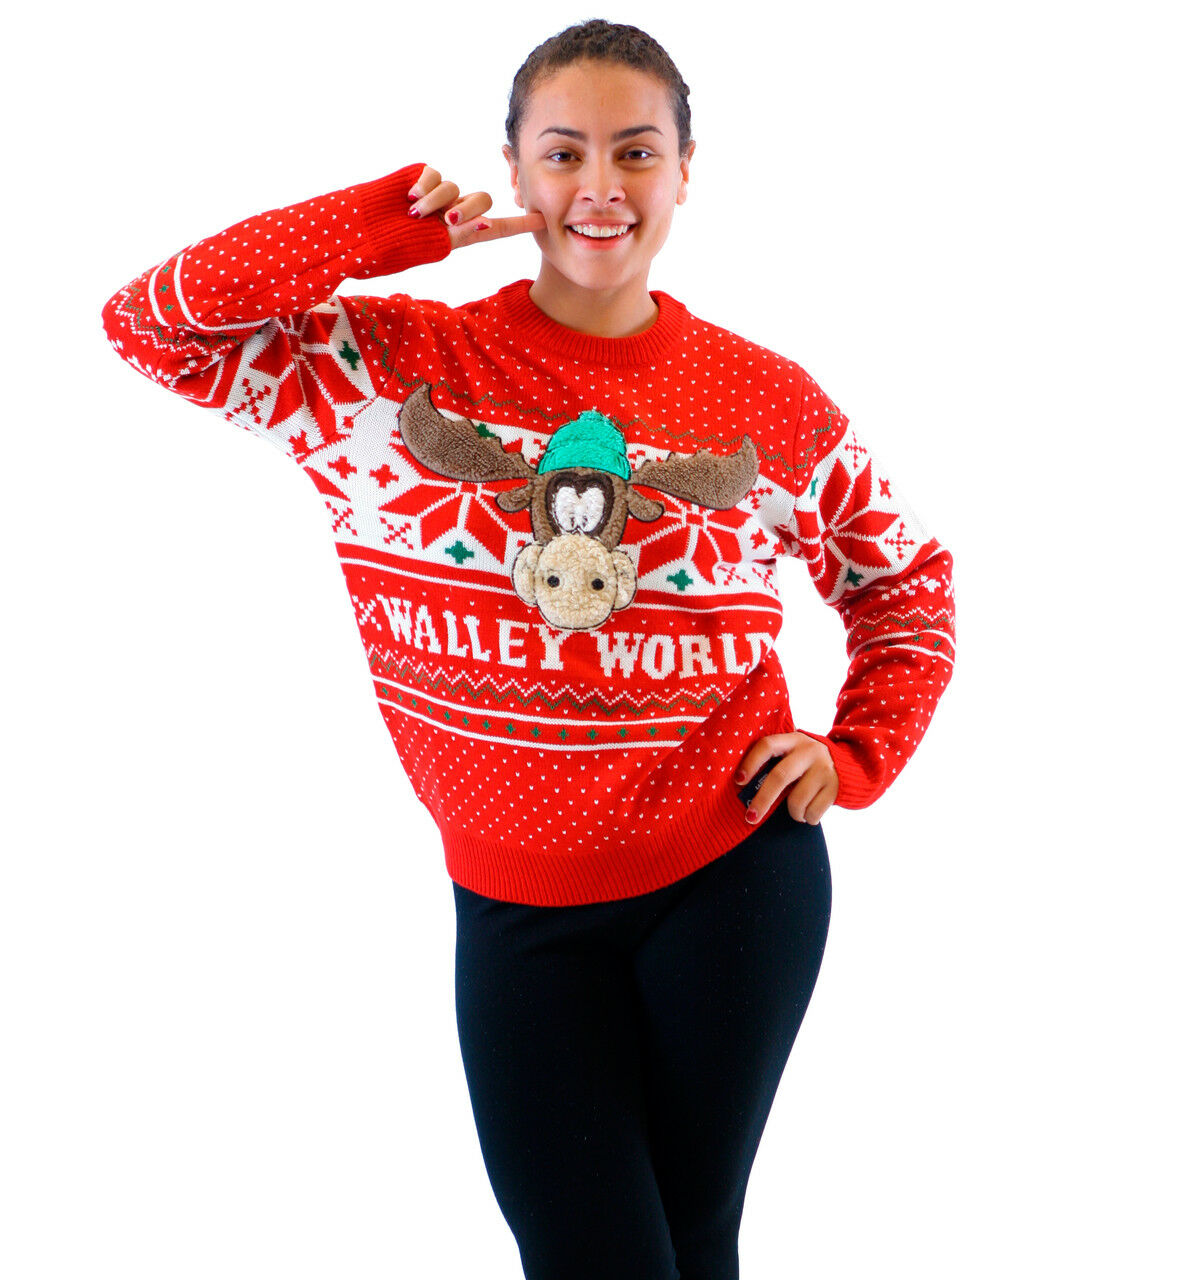 Adult Christmas Vacation Marty Moose Walley World rot Ugly Christmas schweißer